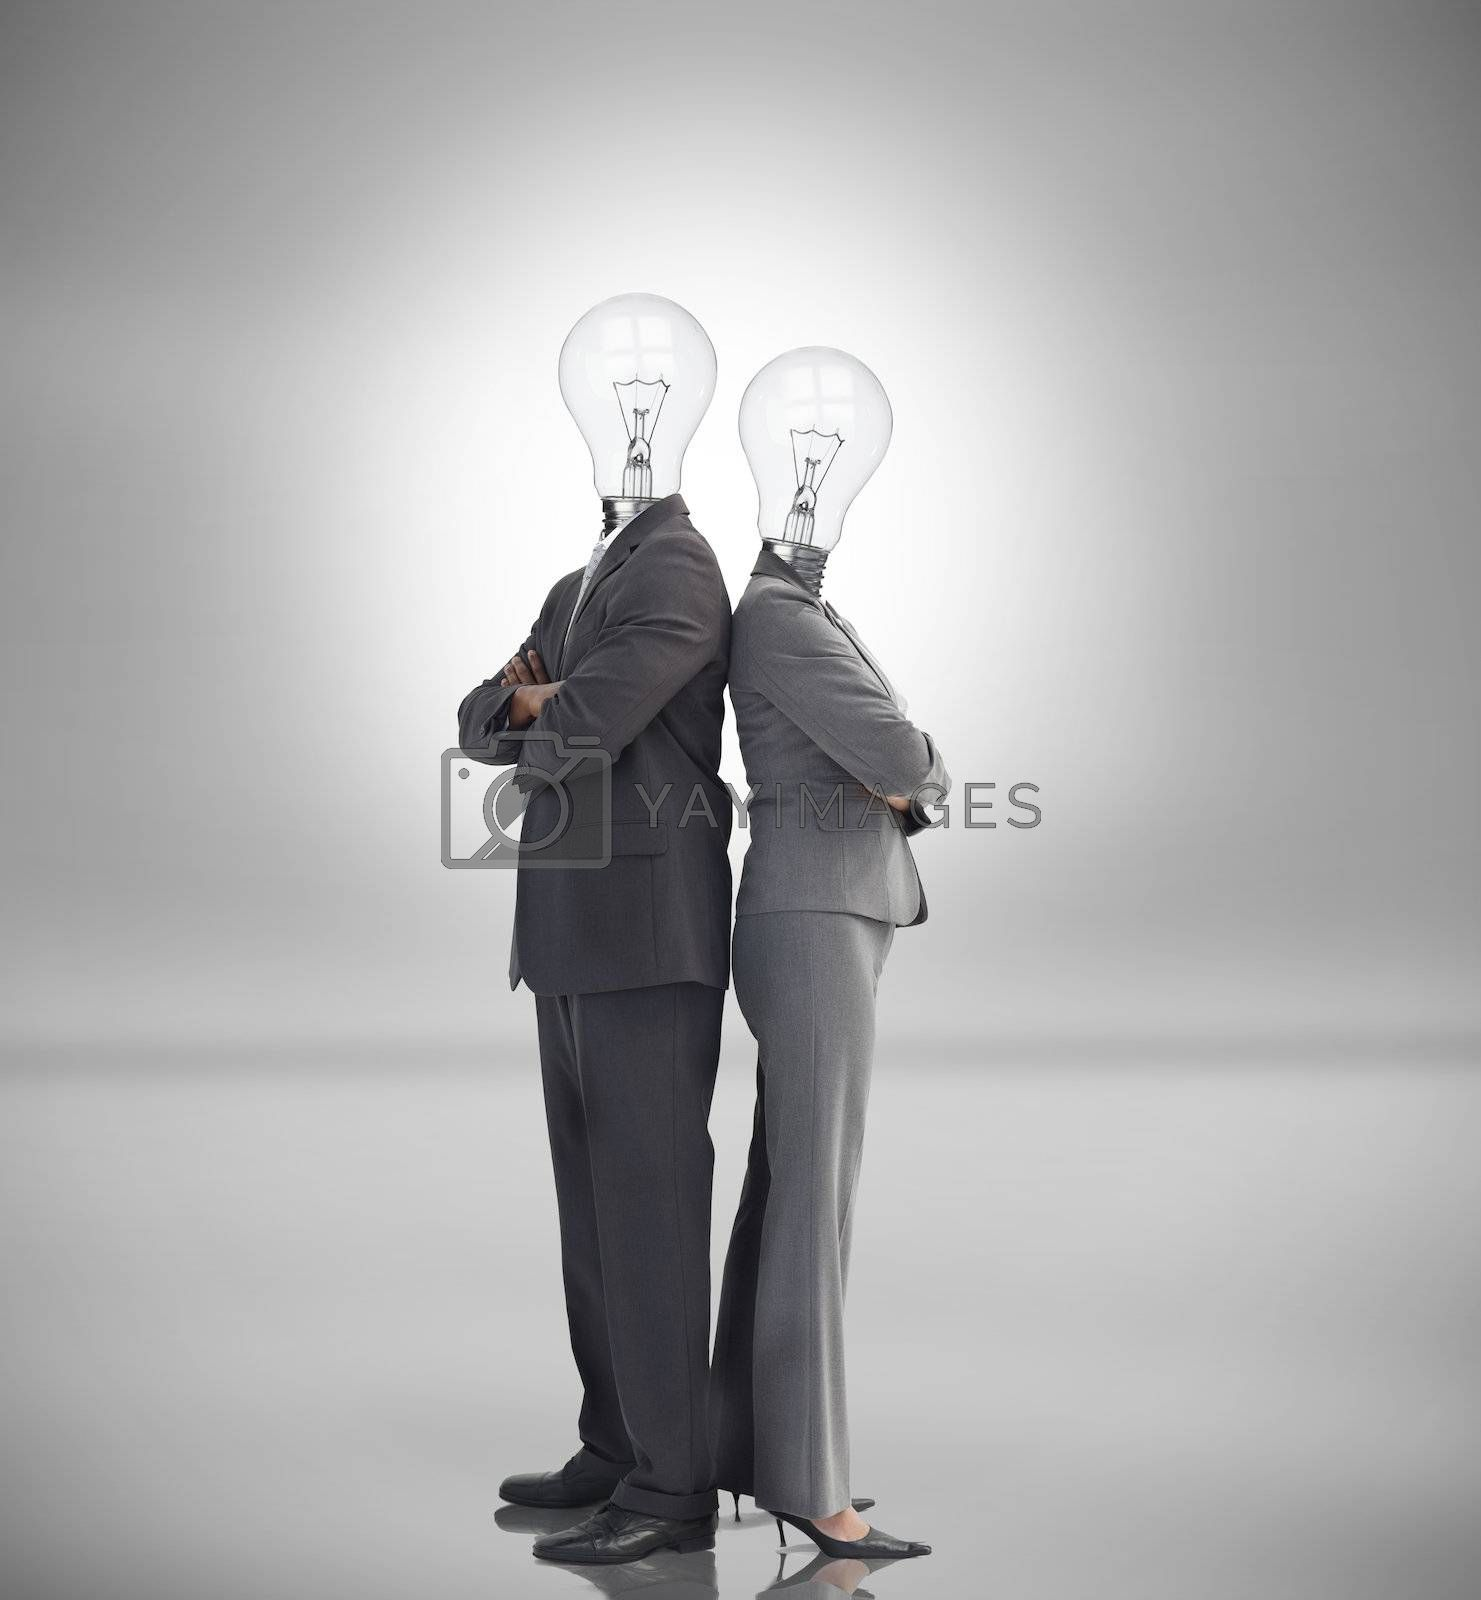 Business people with light bulbs instead of heads standing back to back